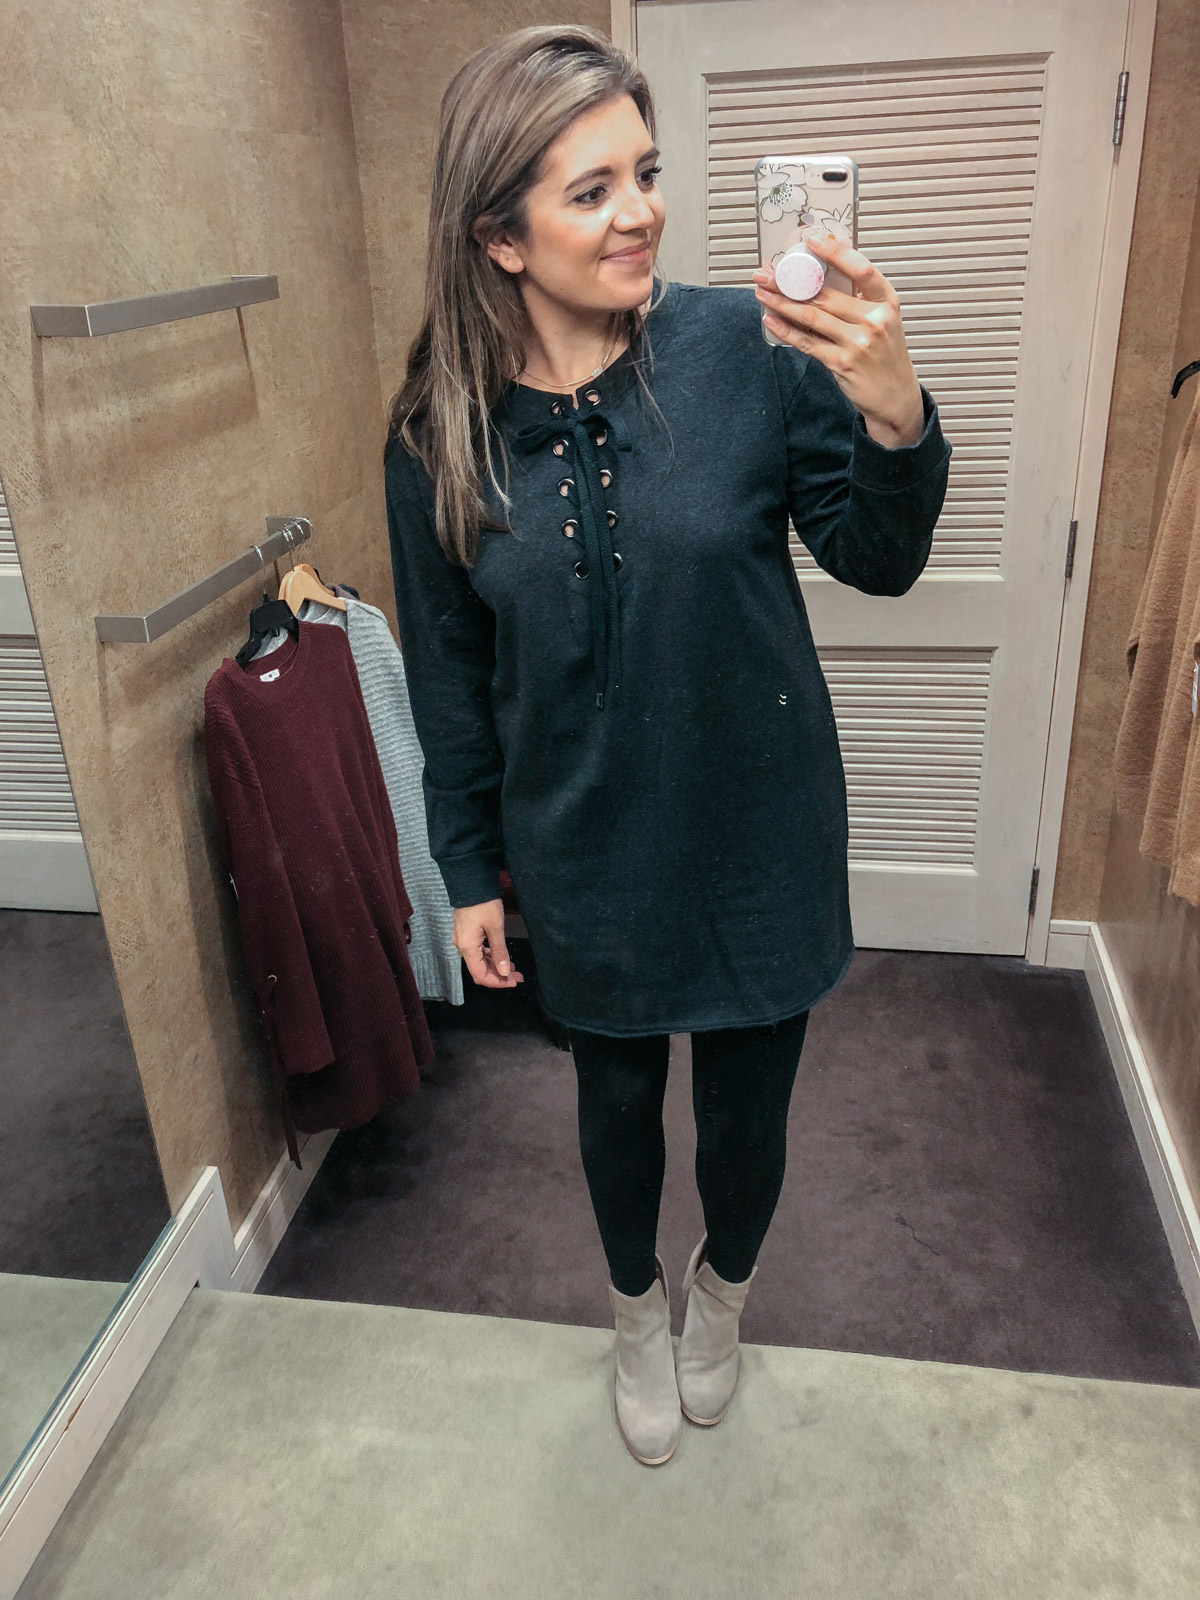 best sweater dresses for leggings | See reviews of 15 sweaters you can wear with leggings at bylaurenm.com!